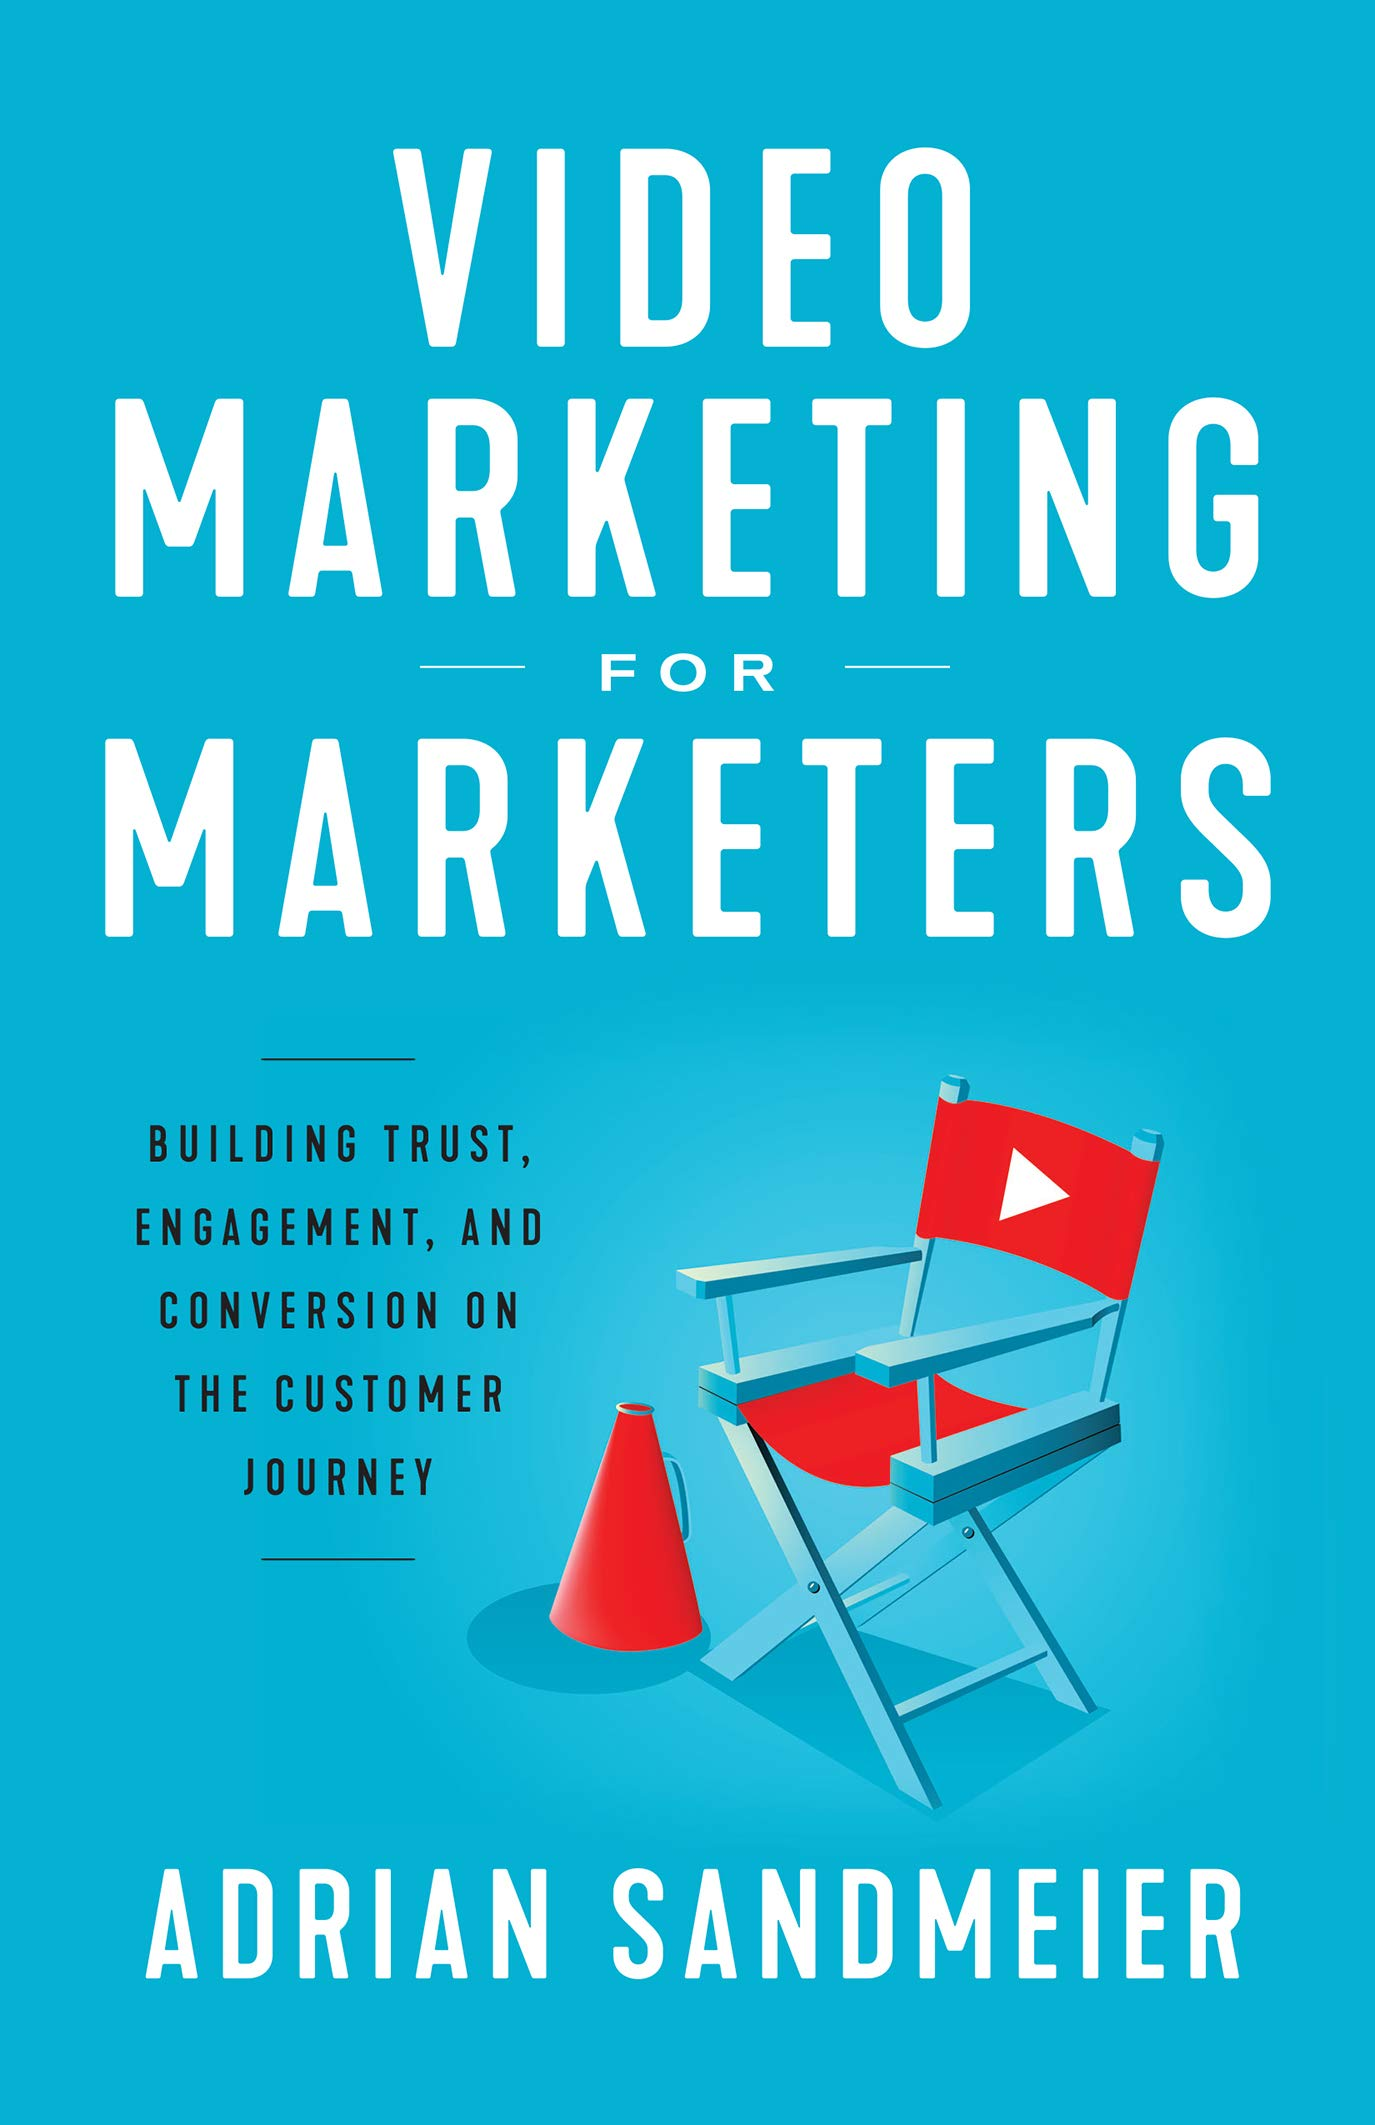 Video Marketing for Marketers : Building Trust, Engagement, and Conversion on the Customer Journey